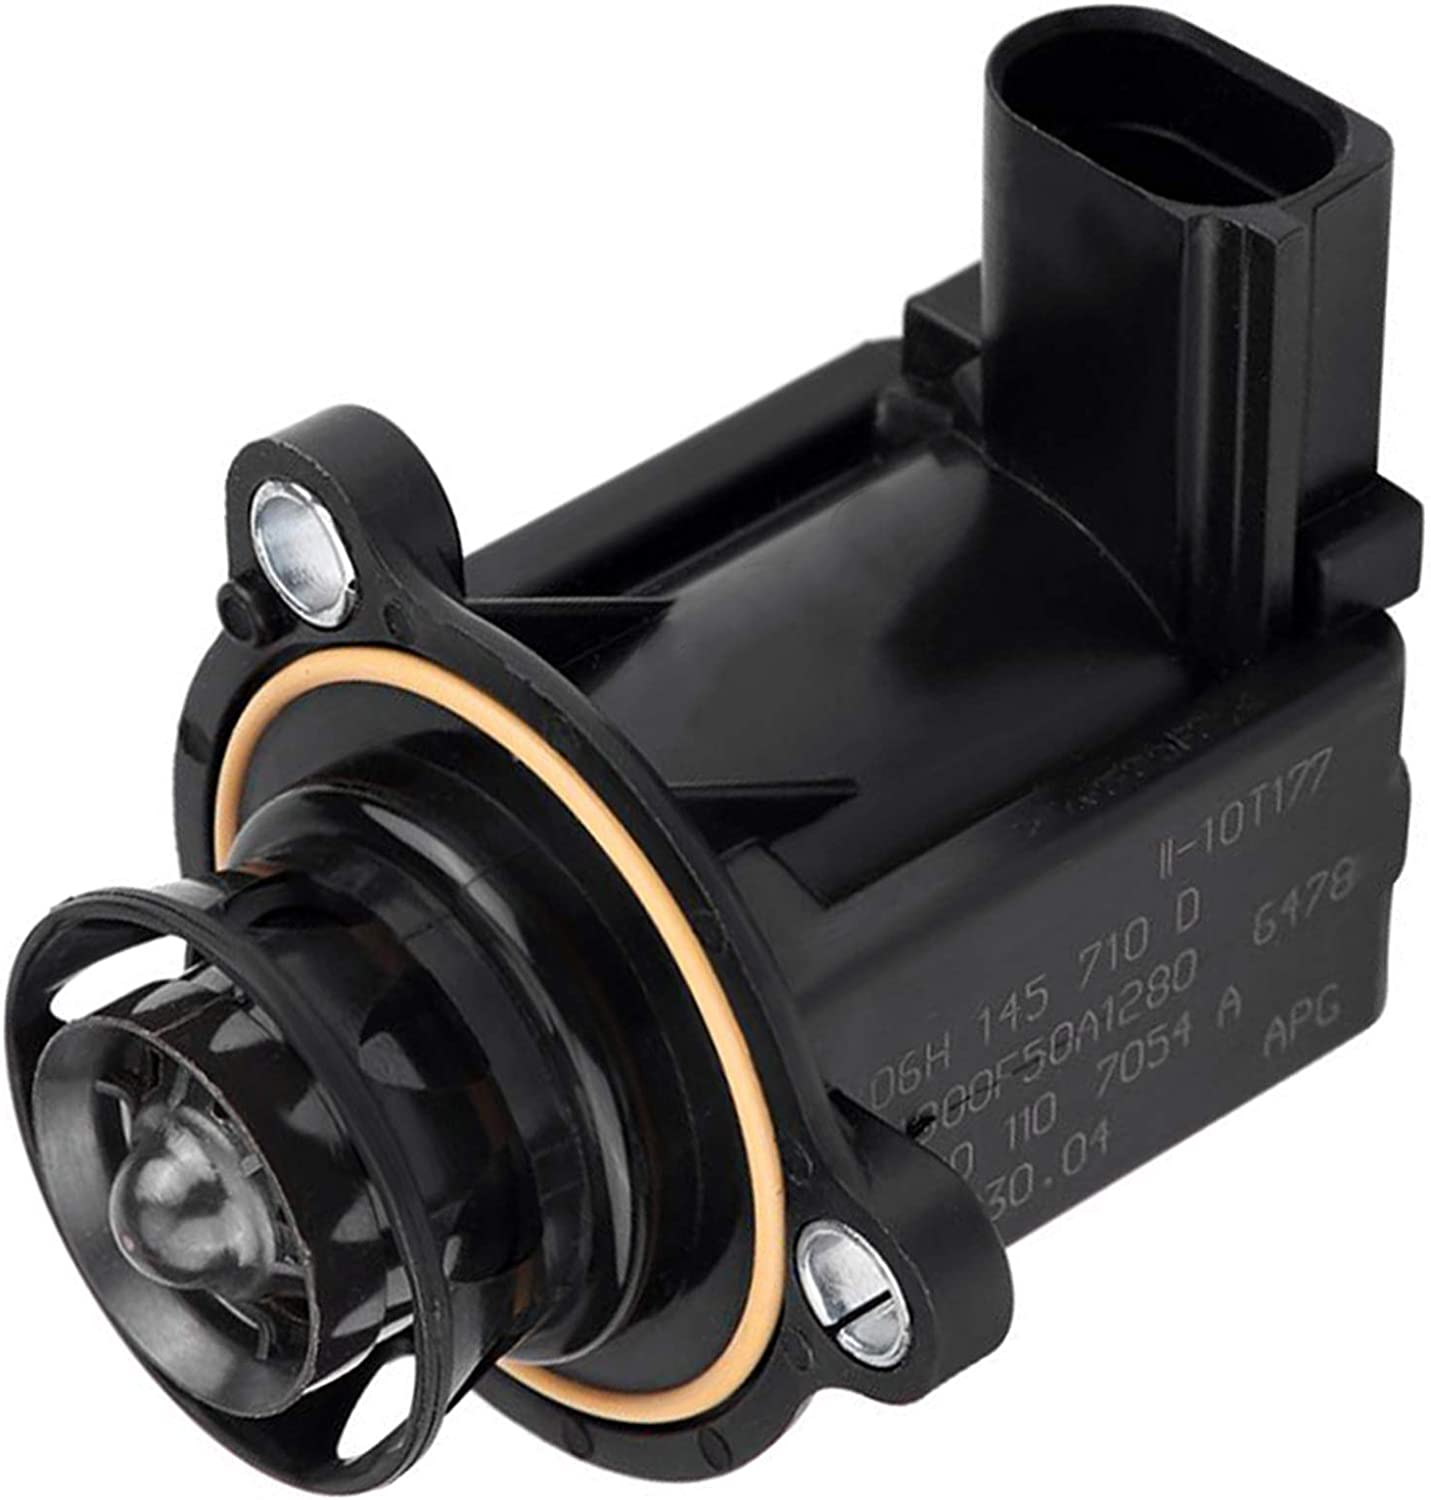 06H145710D Turbo Turbocharger Cut Off Valve Lowest price challenge price Bypass Comp Diverter